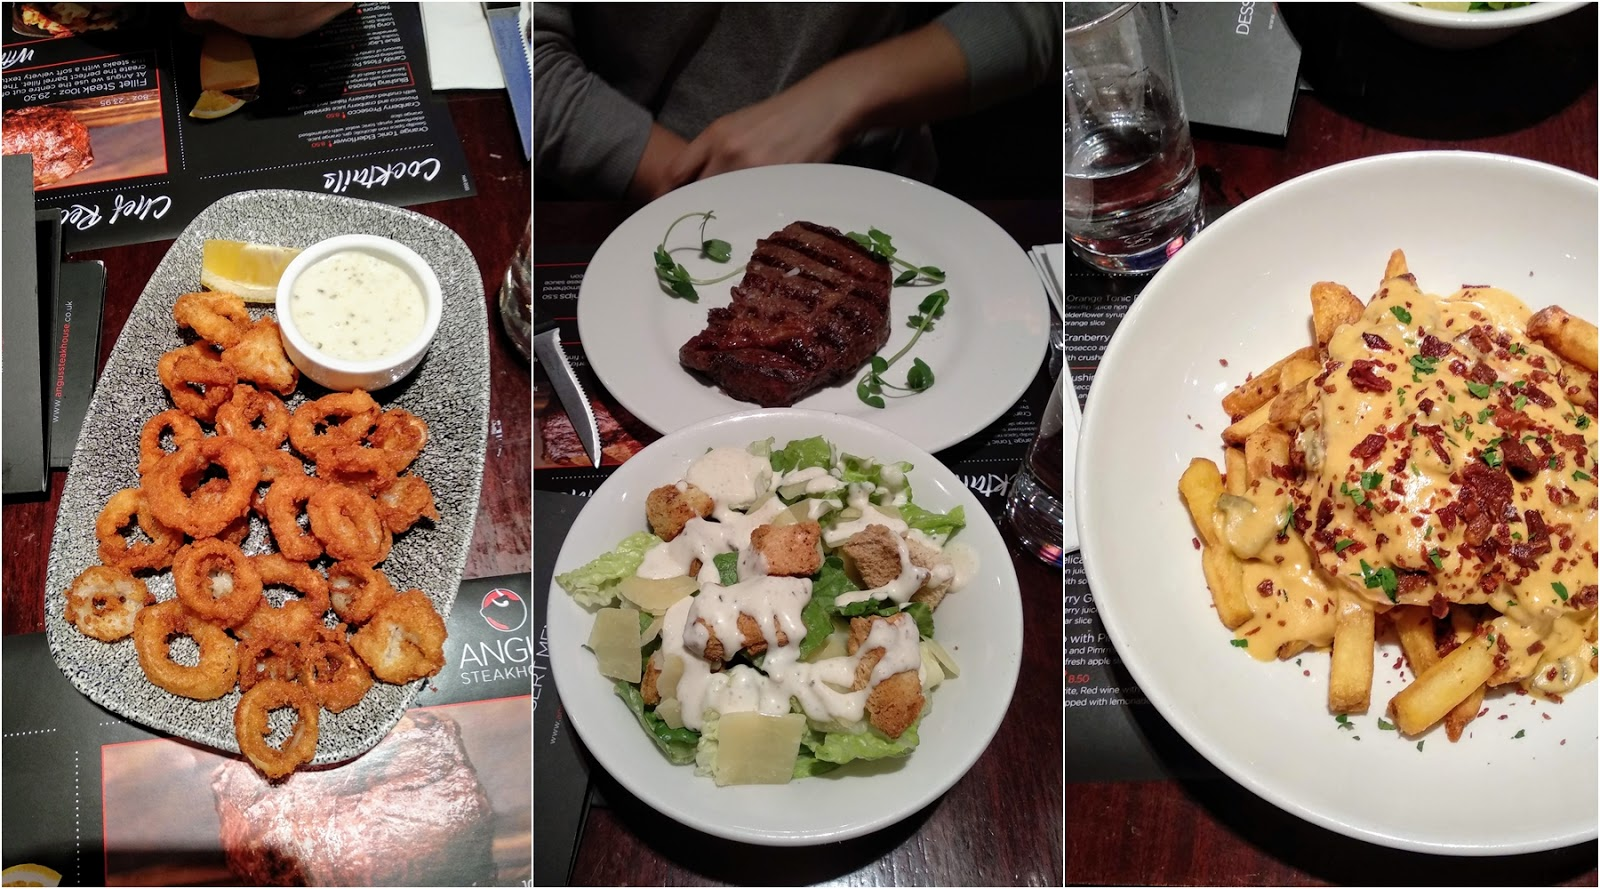 Londres Hotel e Restaurantes - Angus Steakhouse